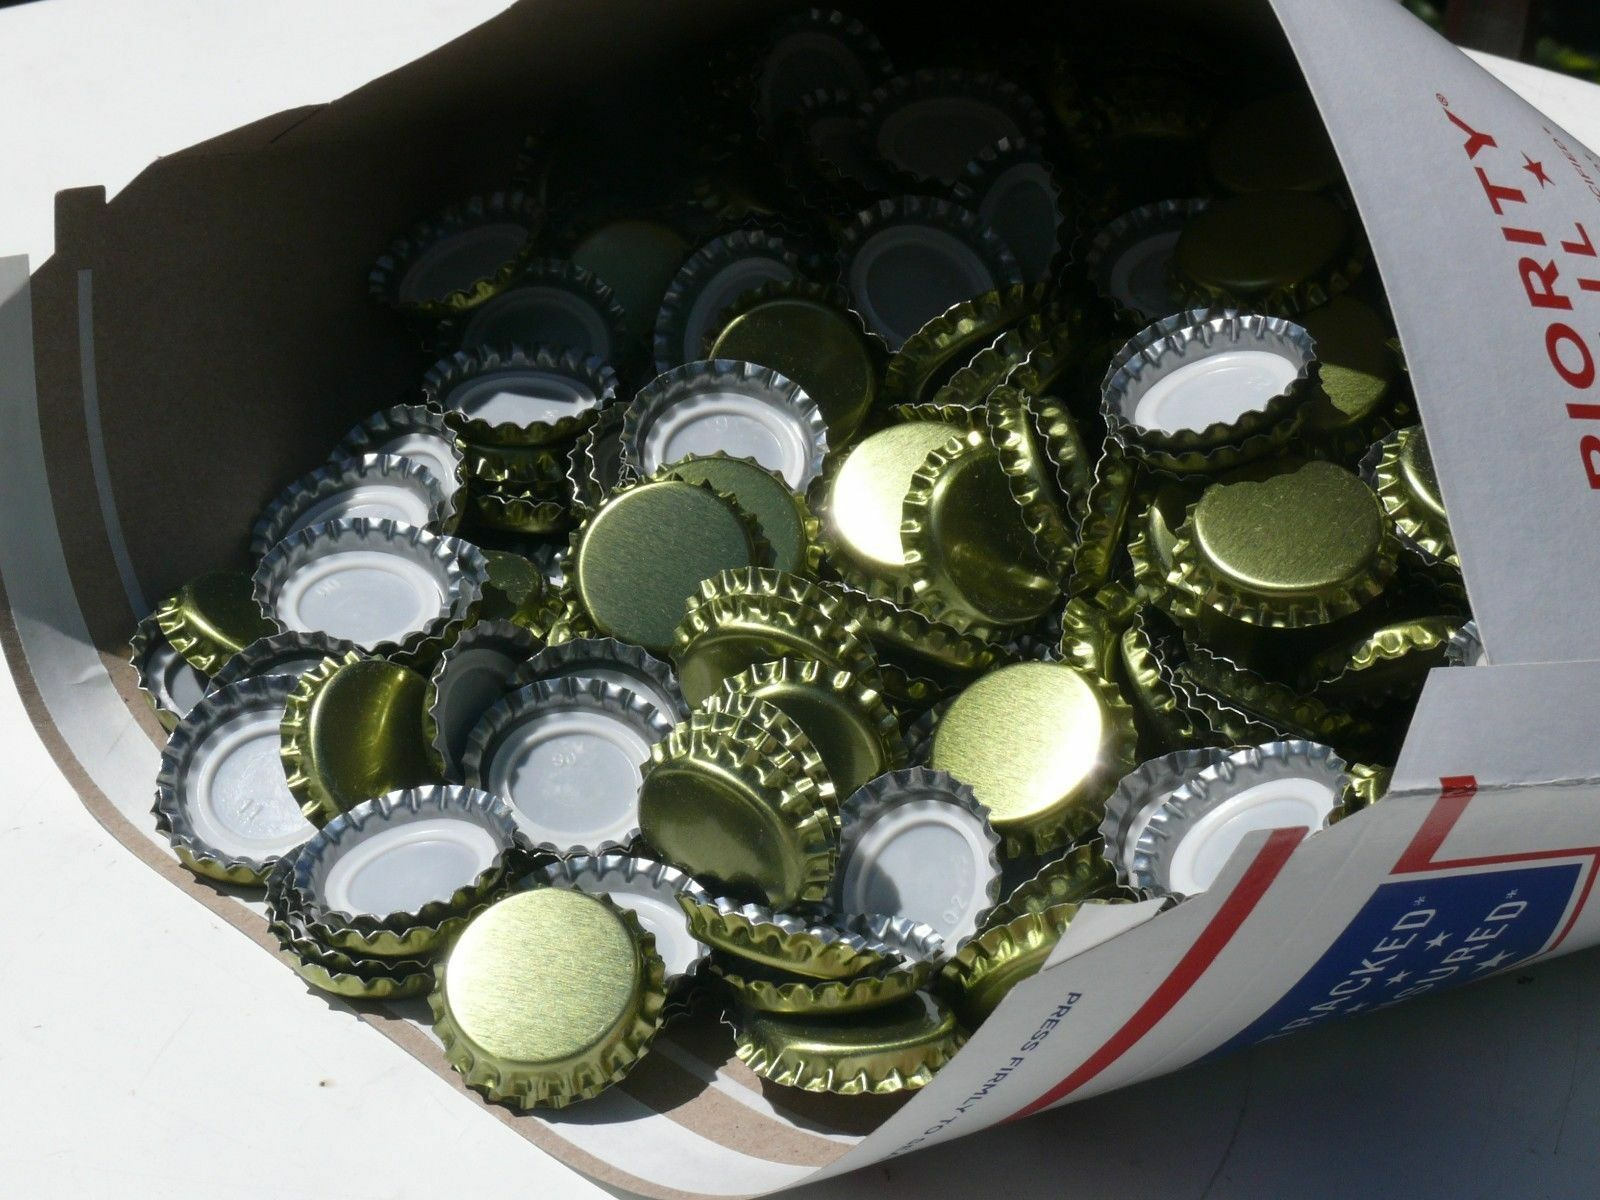 s l1600 576 Lined Bottle Caps Bottling Beer Home Brew Brewing New Gold FREE SHIPPING!!!